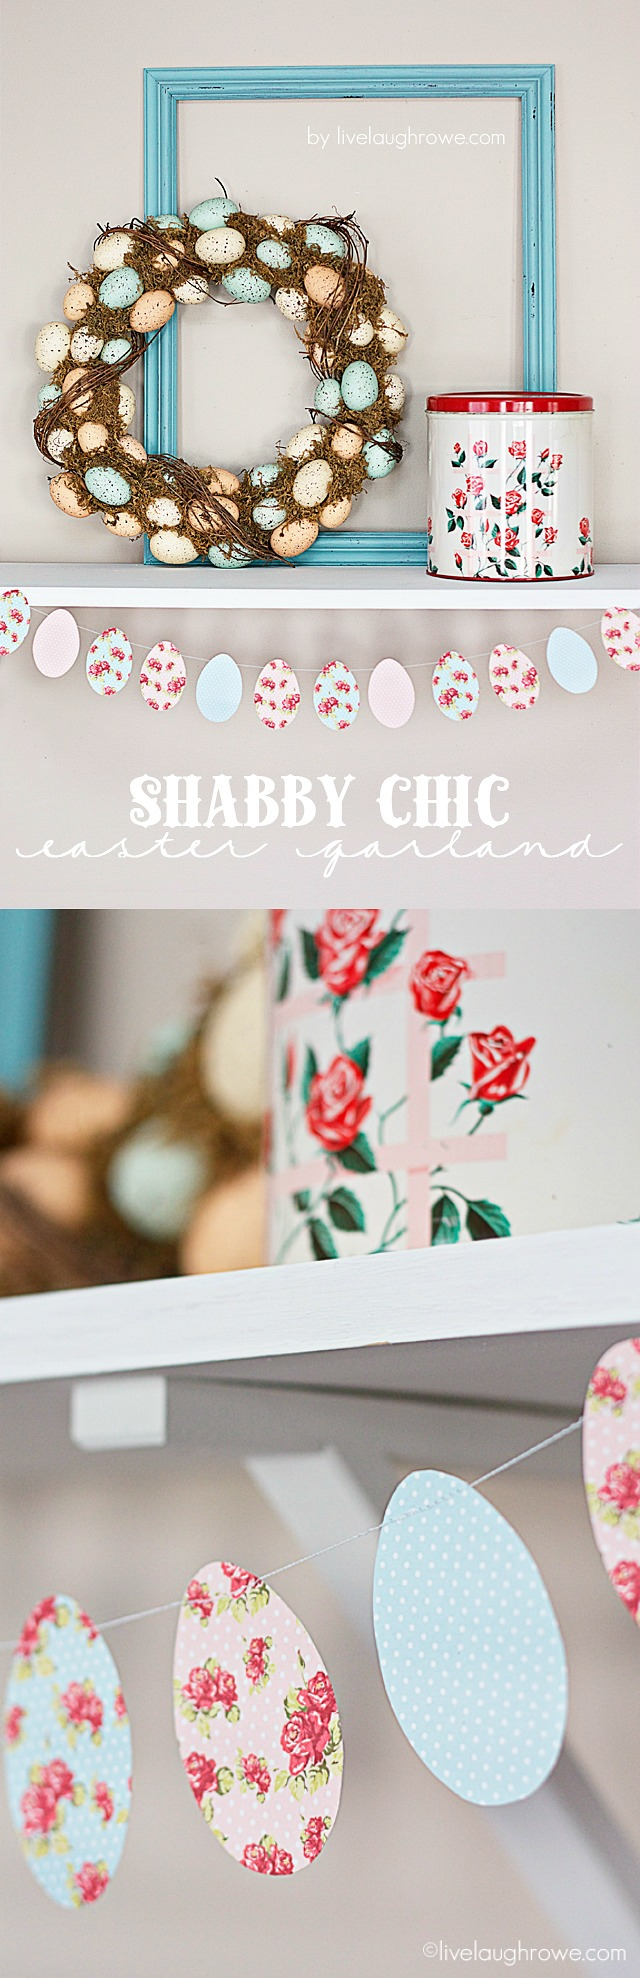 Easter Crafts - Shabby Chic Easter Garland.  Easter Egg Printable - Live Laugh Rowe